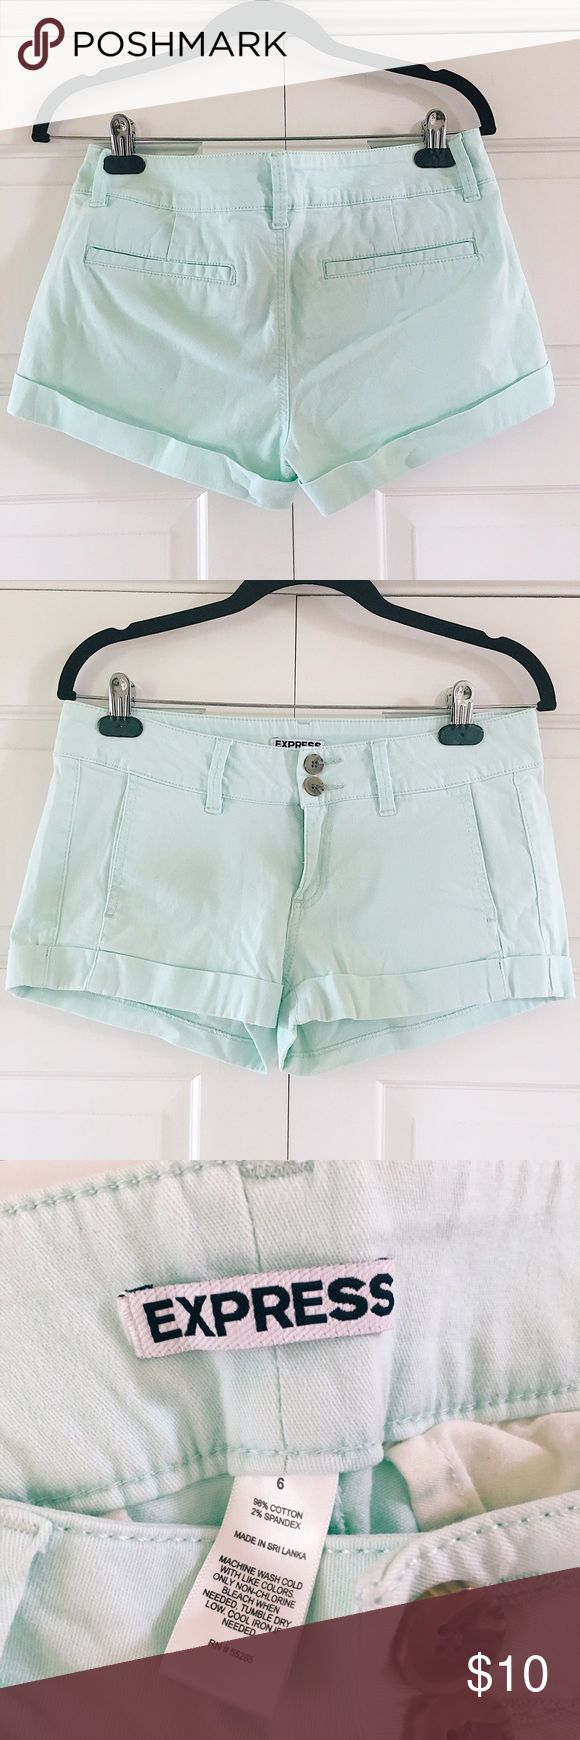 Express mint green shorts EXPRESS mint teen shorts size 6! barely used! Express Shorts